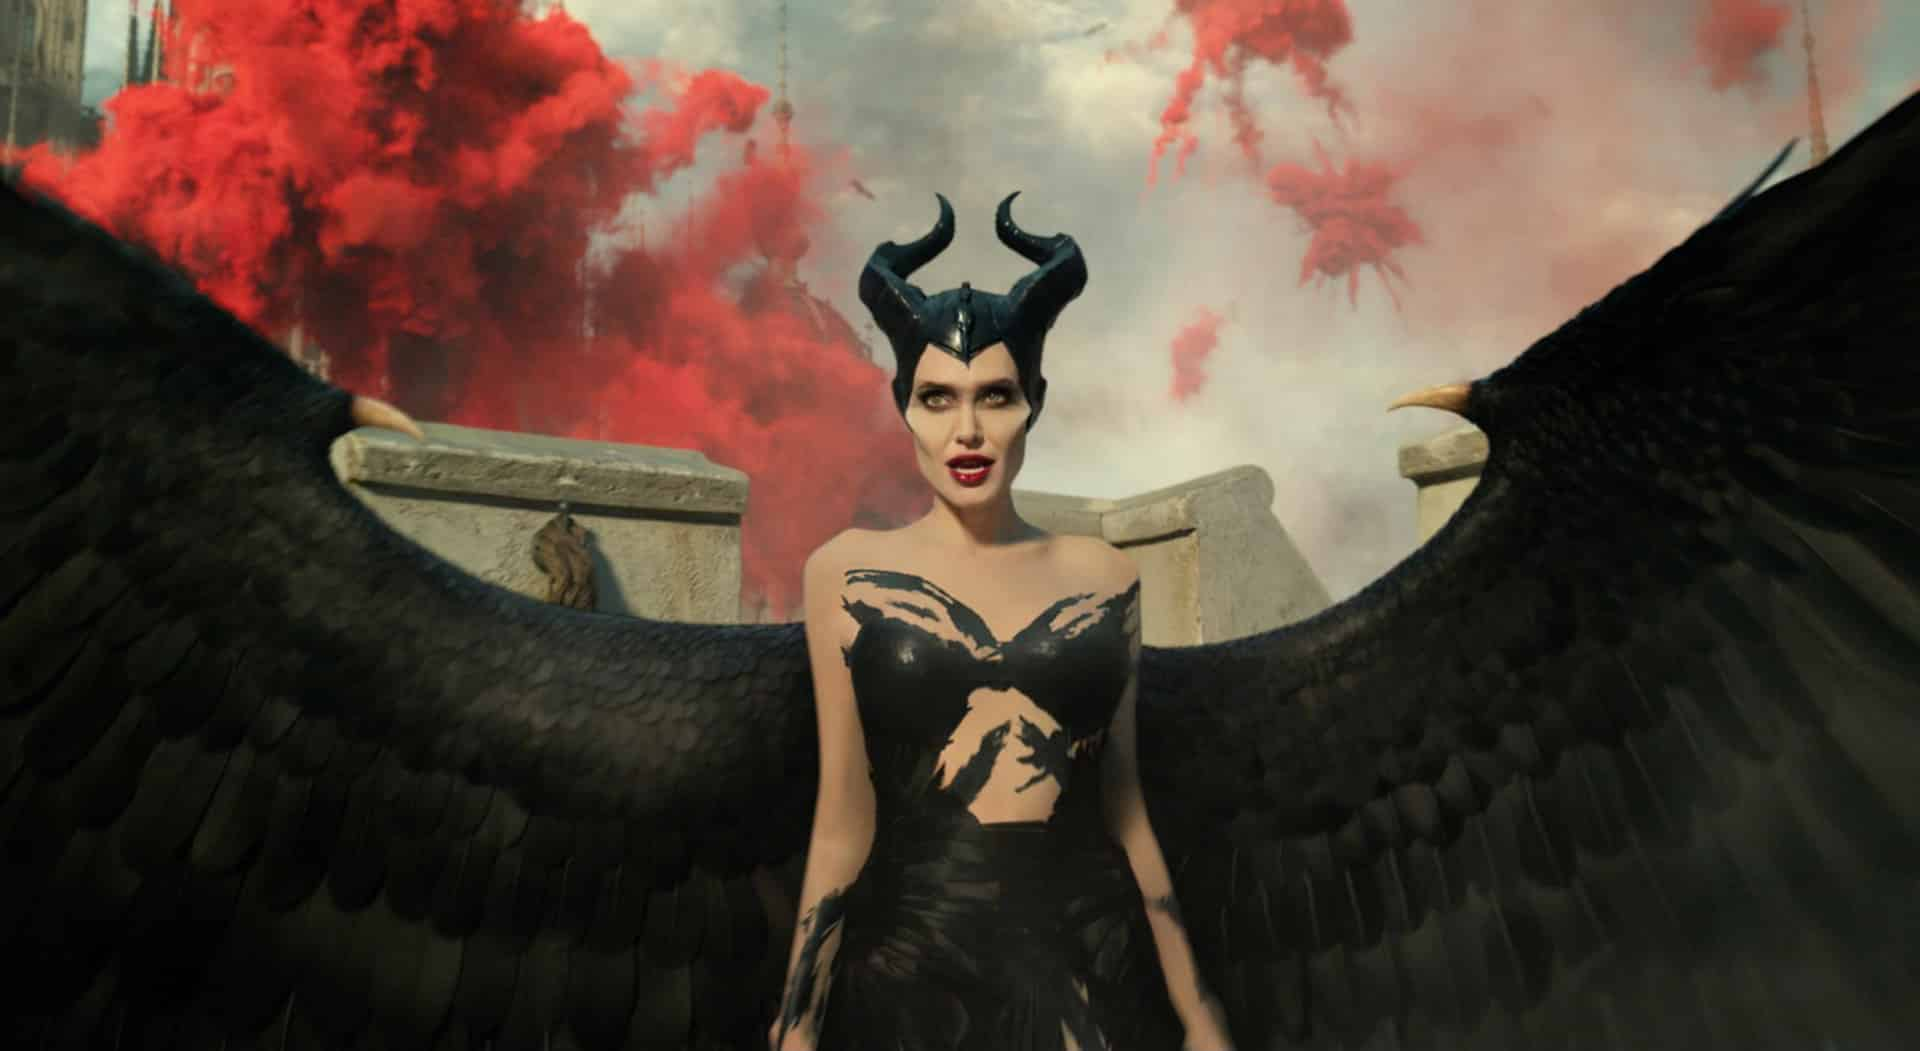 Maleficent Disney fairy tale princesses Disney Cruella mystique villain villainy mystery of evil ruined by too much information, backstory, exposition as seen with Darth Vader